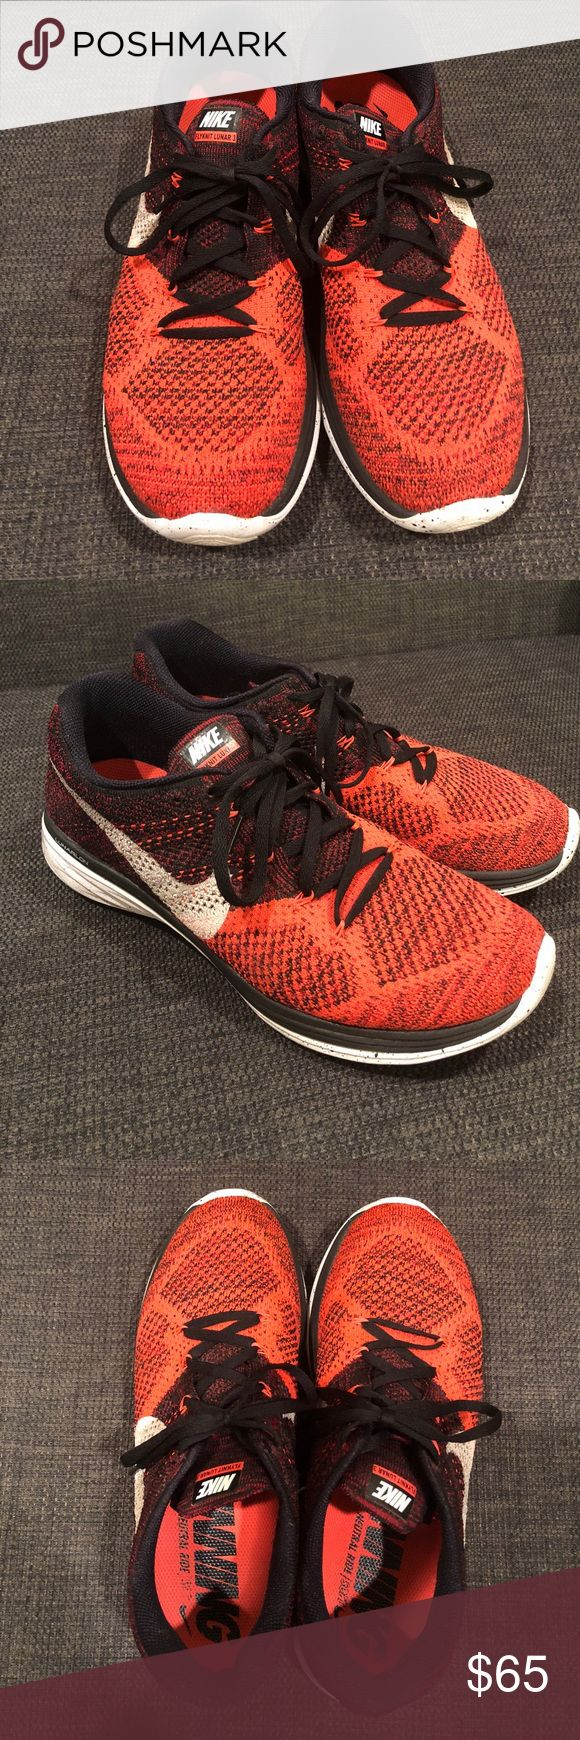 Nike Flyknit Lunar 3 Size 10 Red Pre-owned still in great condition. Men's Nike Flyknit Lunar 3 in red. Perfect for running & work out :) make a reasonable offer and I will accept it. Thanks! Nike Shoes Sneakers